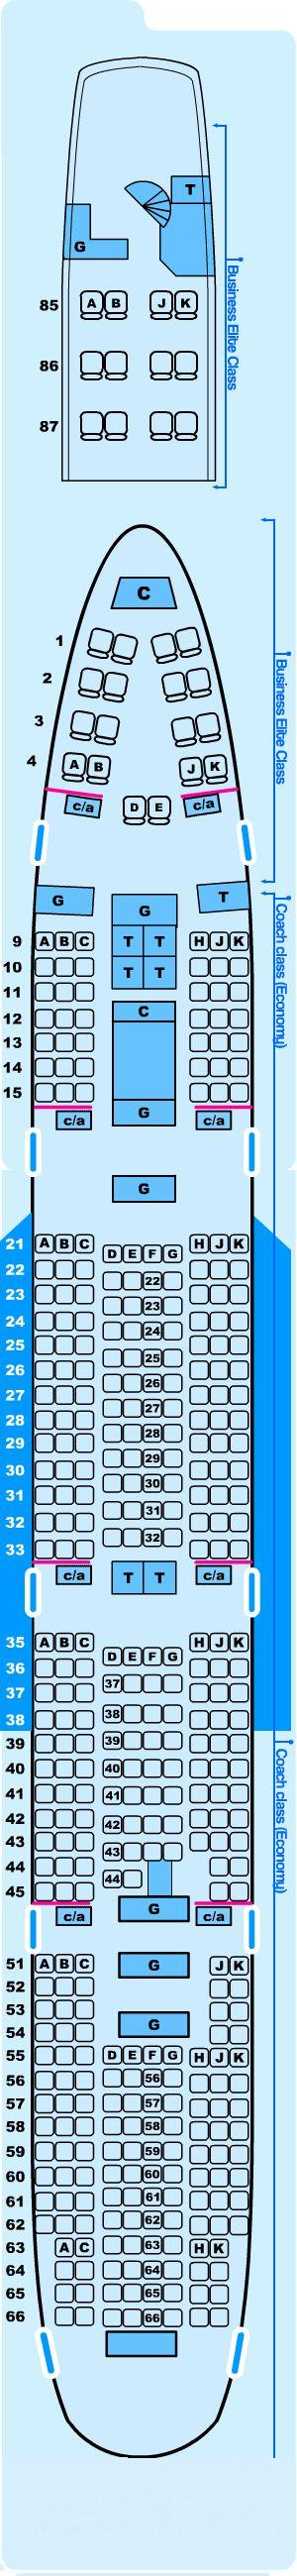 Seat map for Northwest Airlines Boeing B747 200 G Special Charter